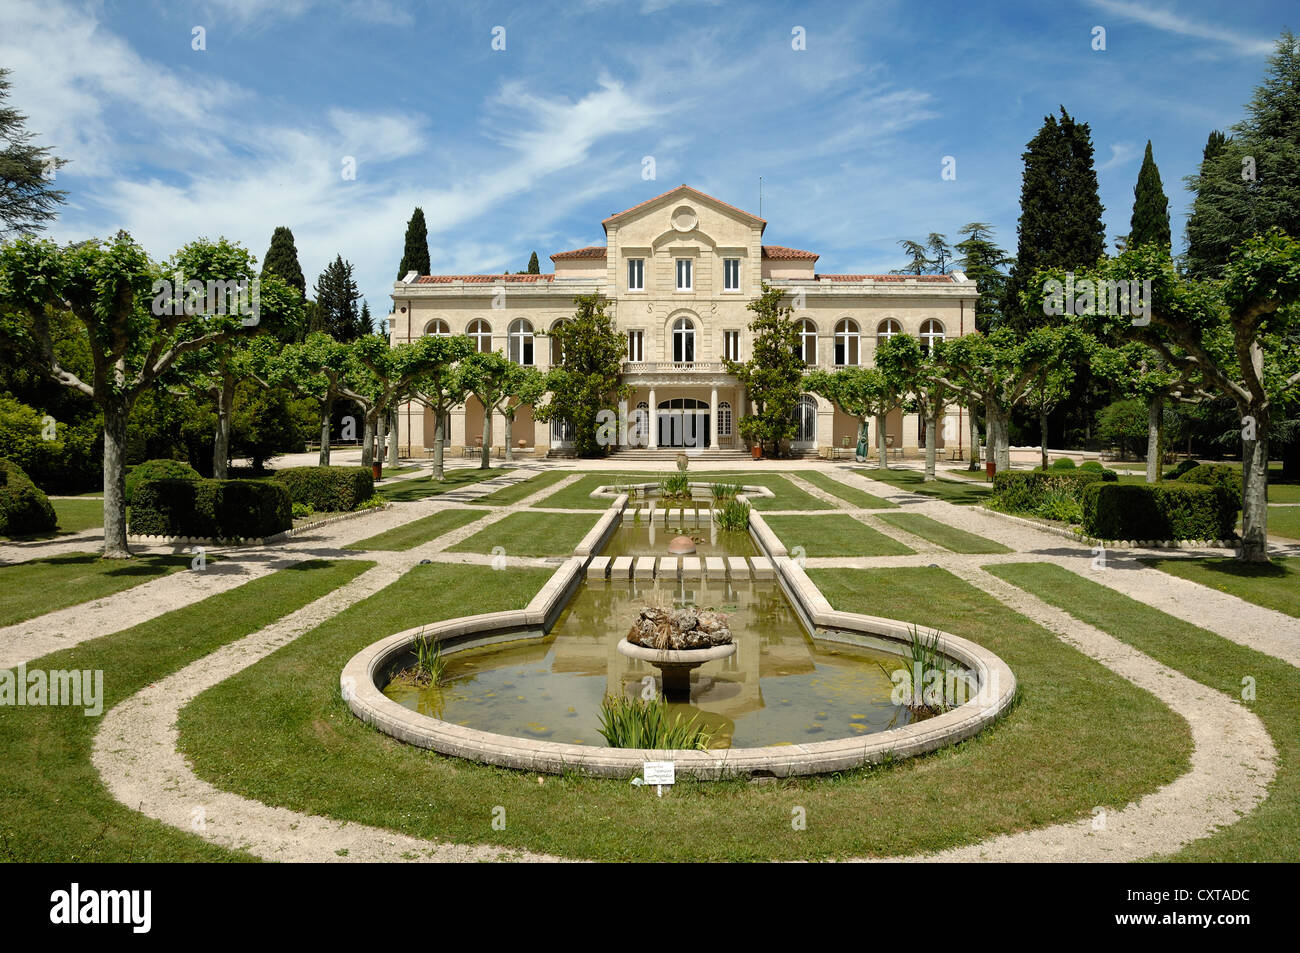 Bouillons Château and Formal French Garden Source Perrier Vergèze nr Nimes Provence France - Stock Image